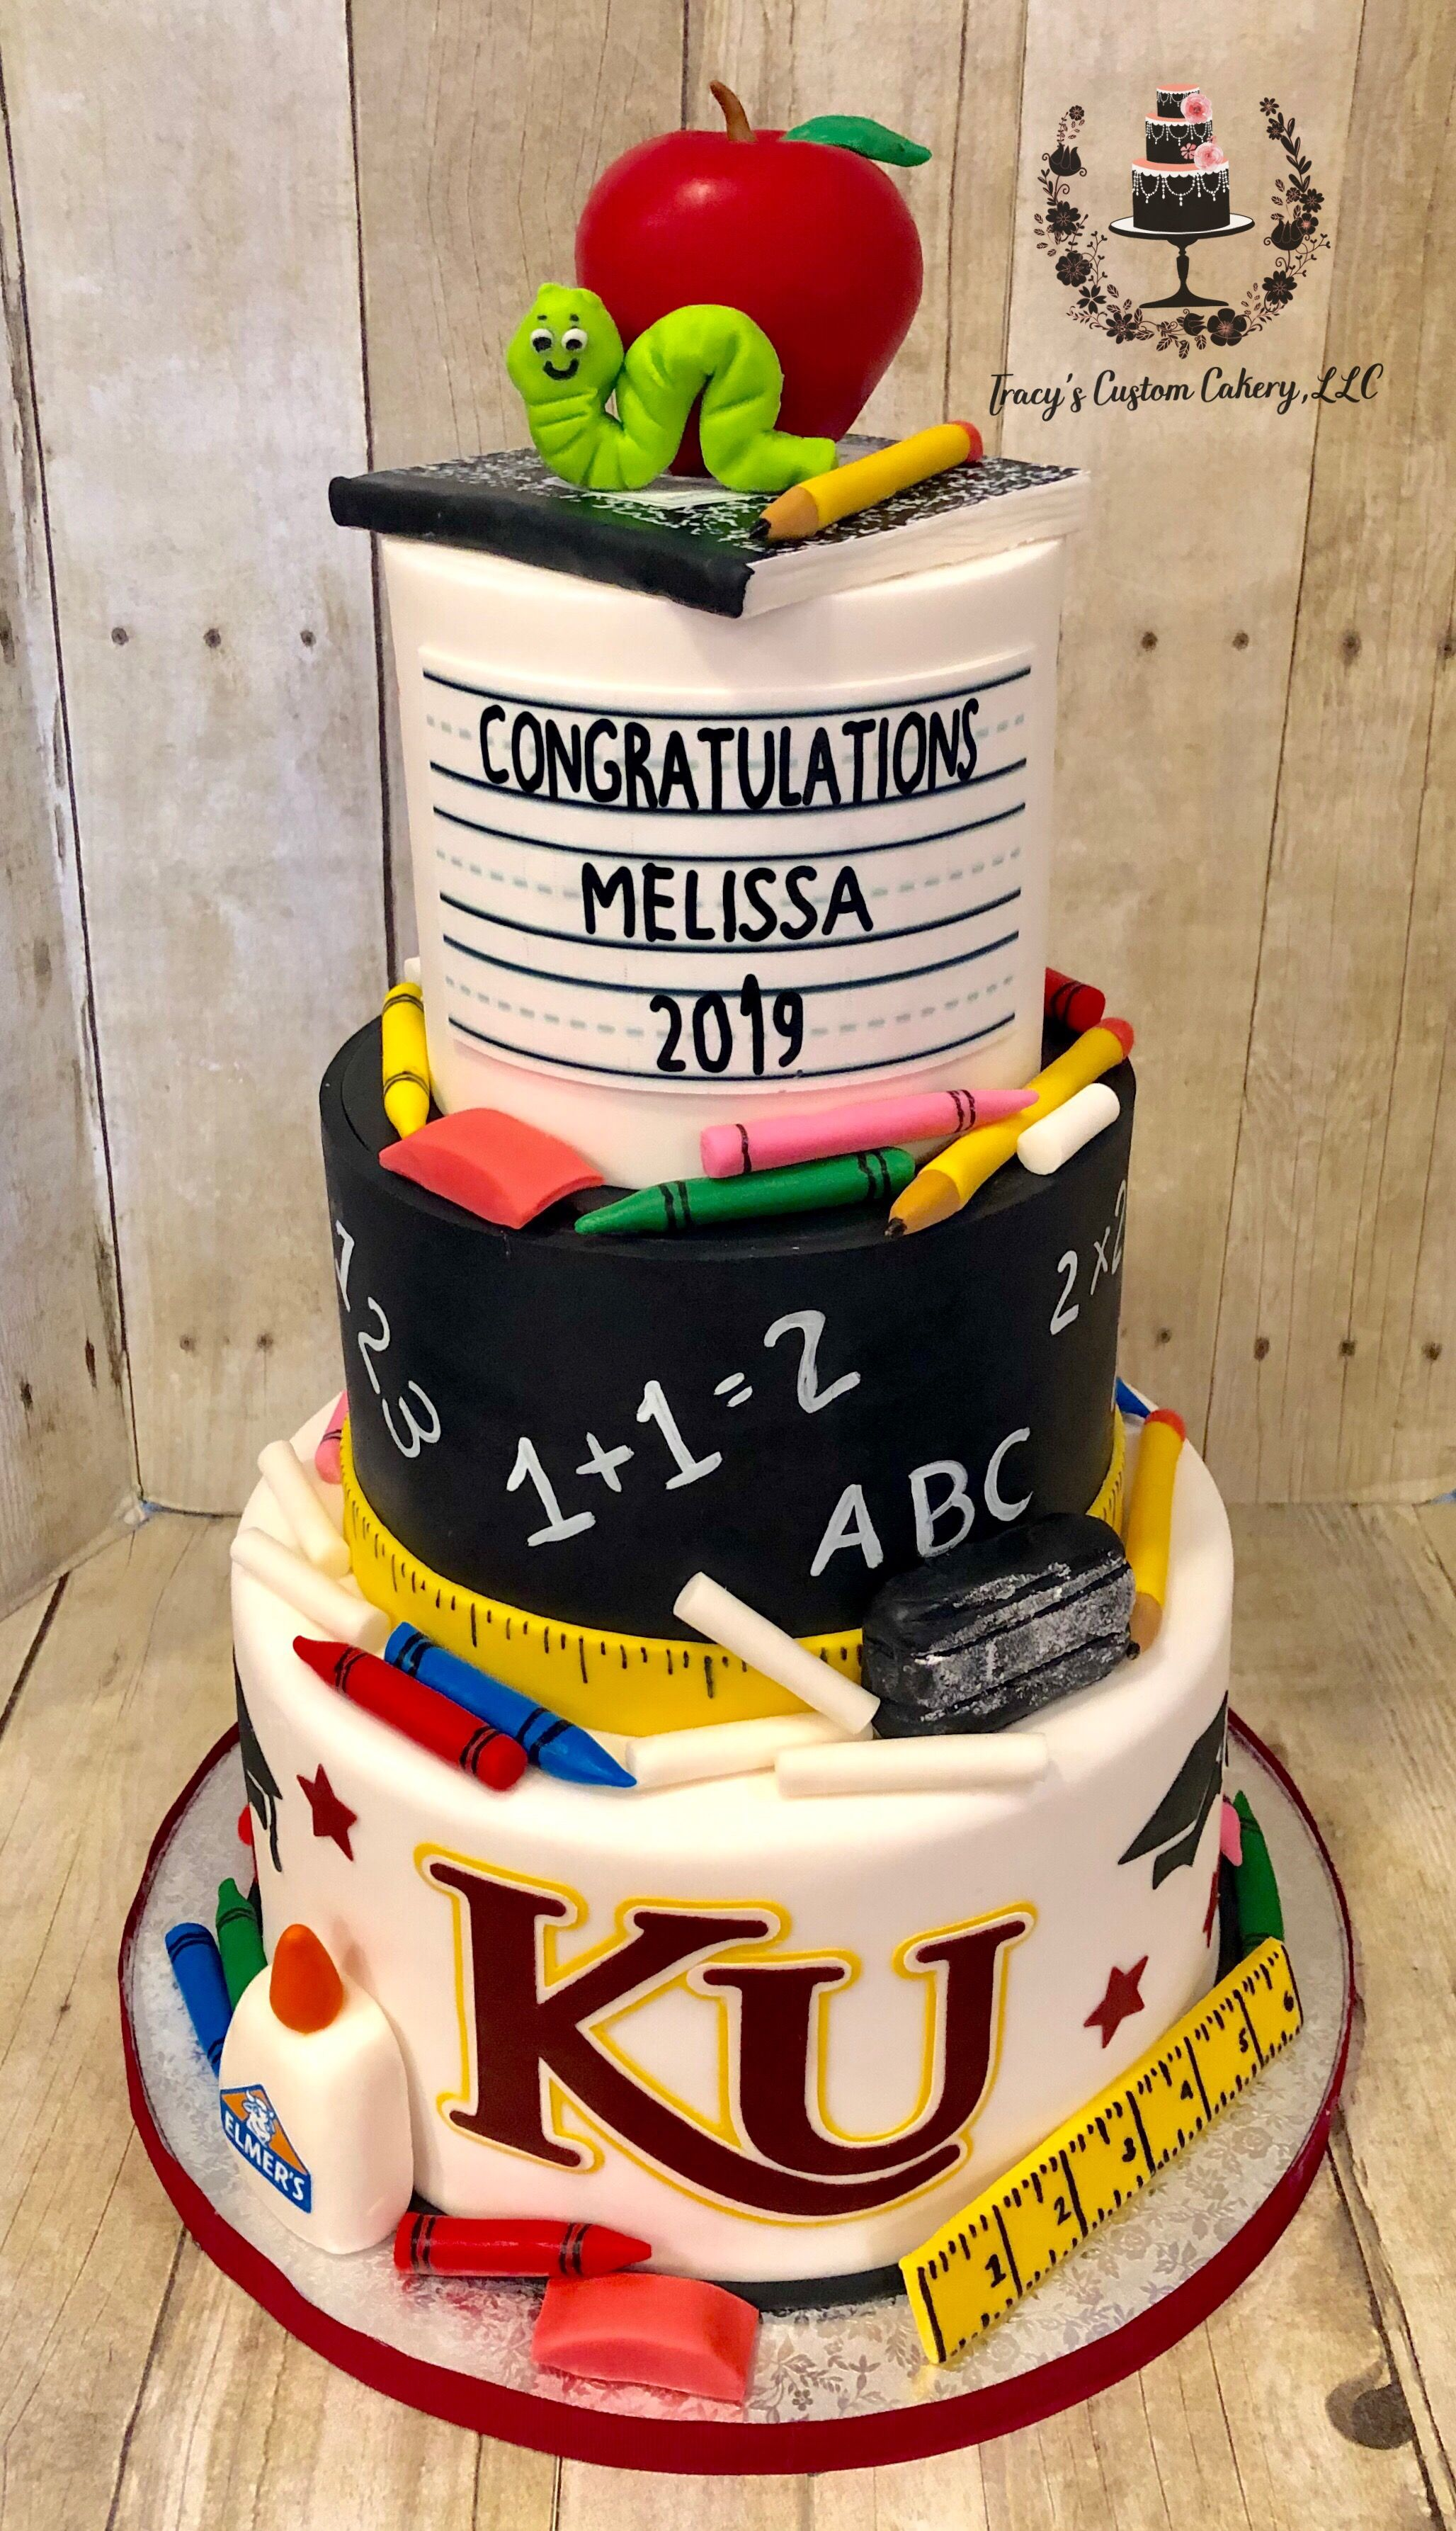 Pleasant Pin By Tracys Custom Cakery Llc On Graduation Cakes With Images Personalised Birthday Cards Akebfashionlily Jamesorg